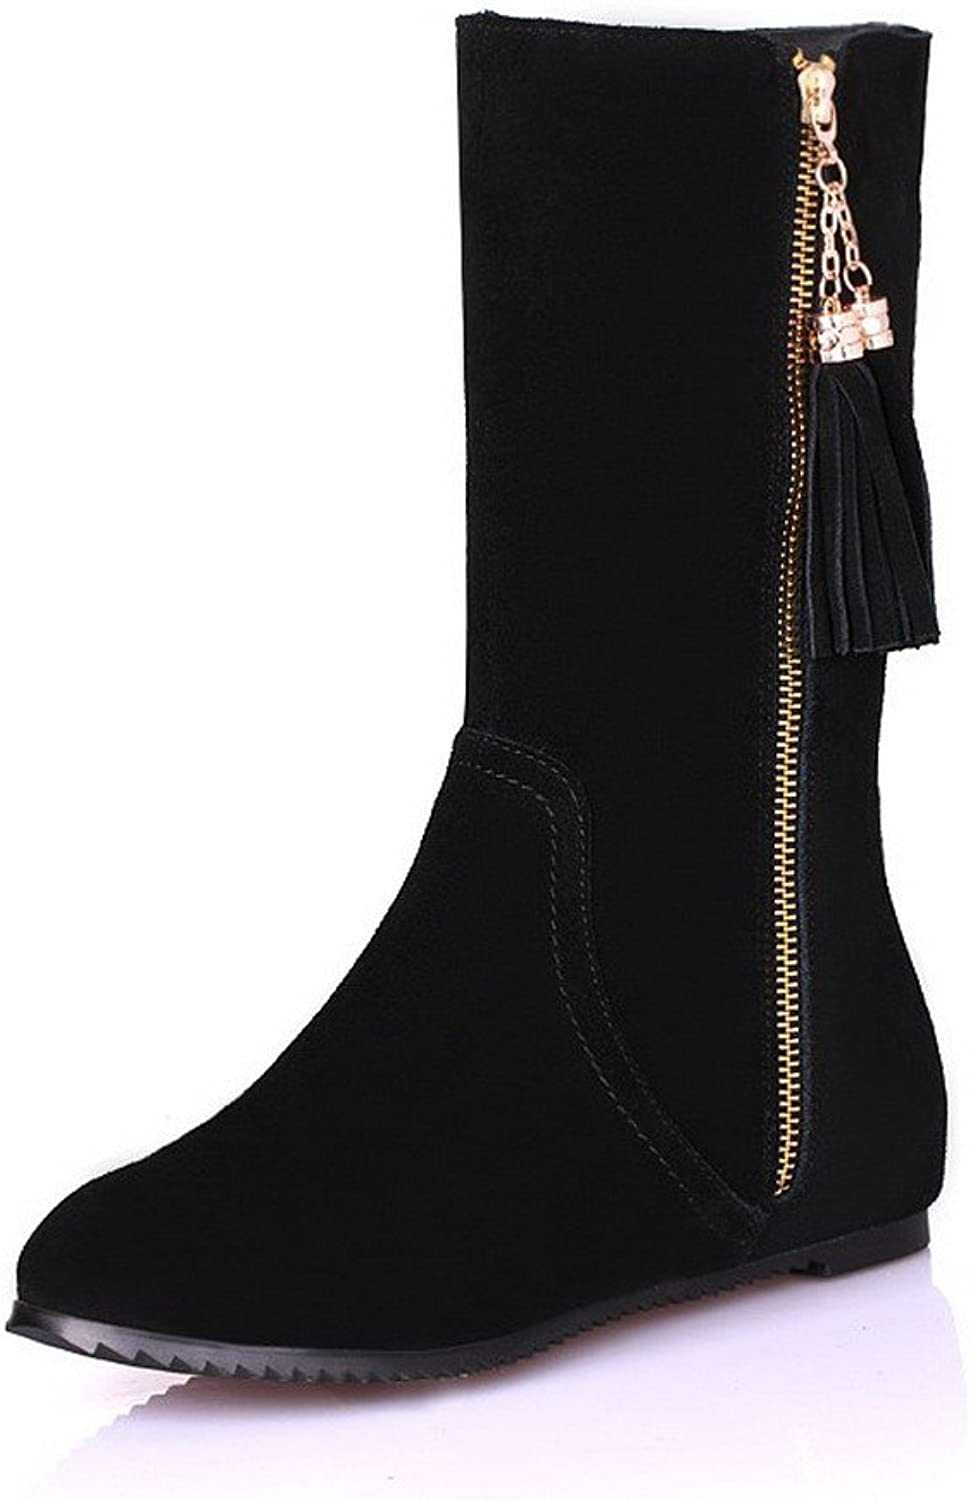 WeiPoot Women's Metalornament Closed-Toe Boots with slide fastener